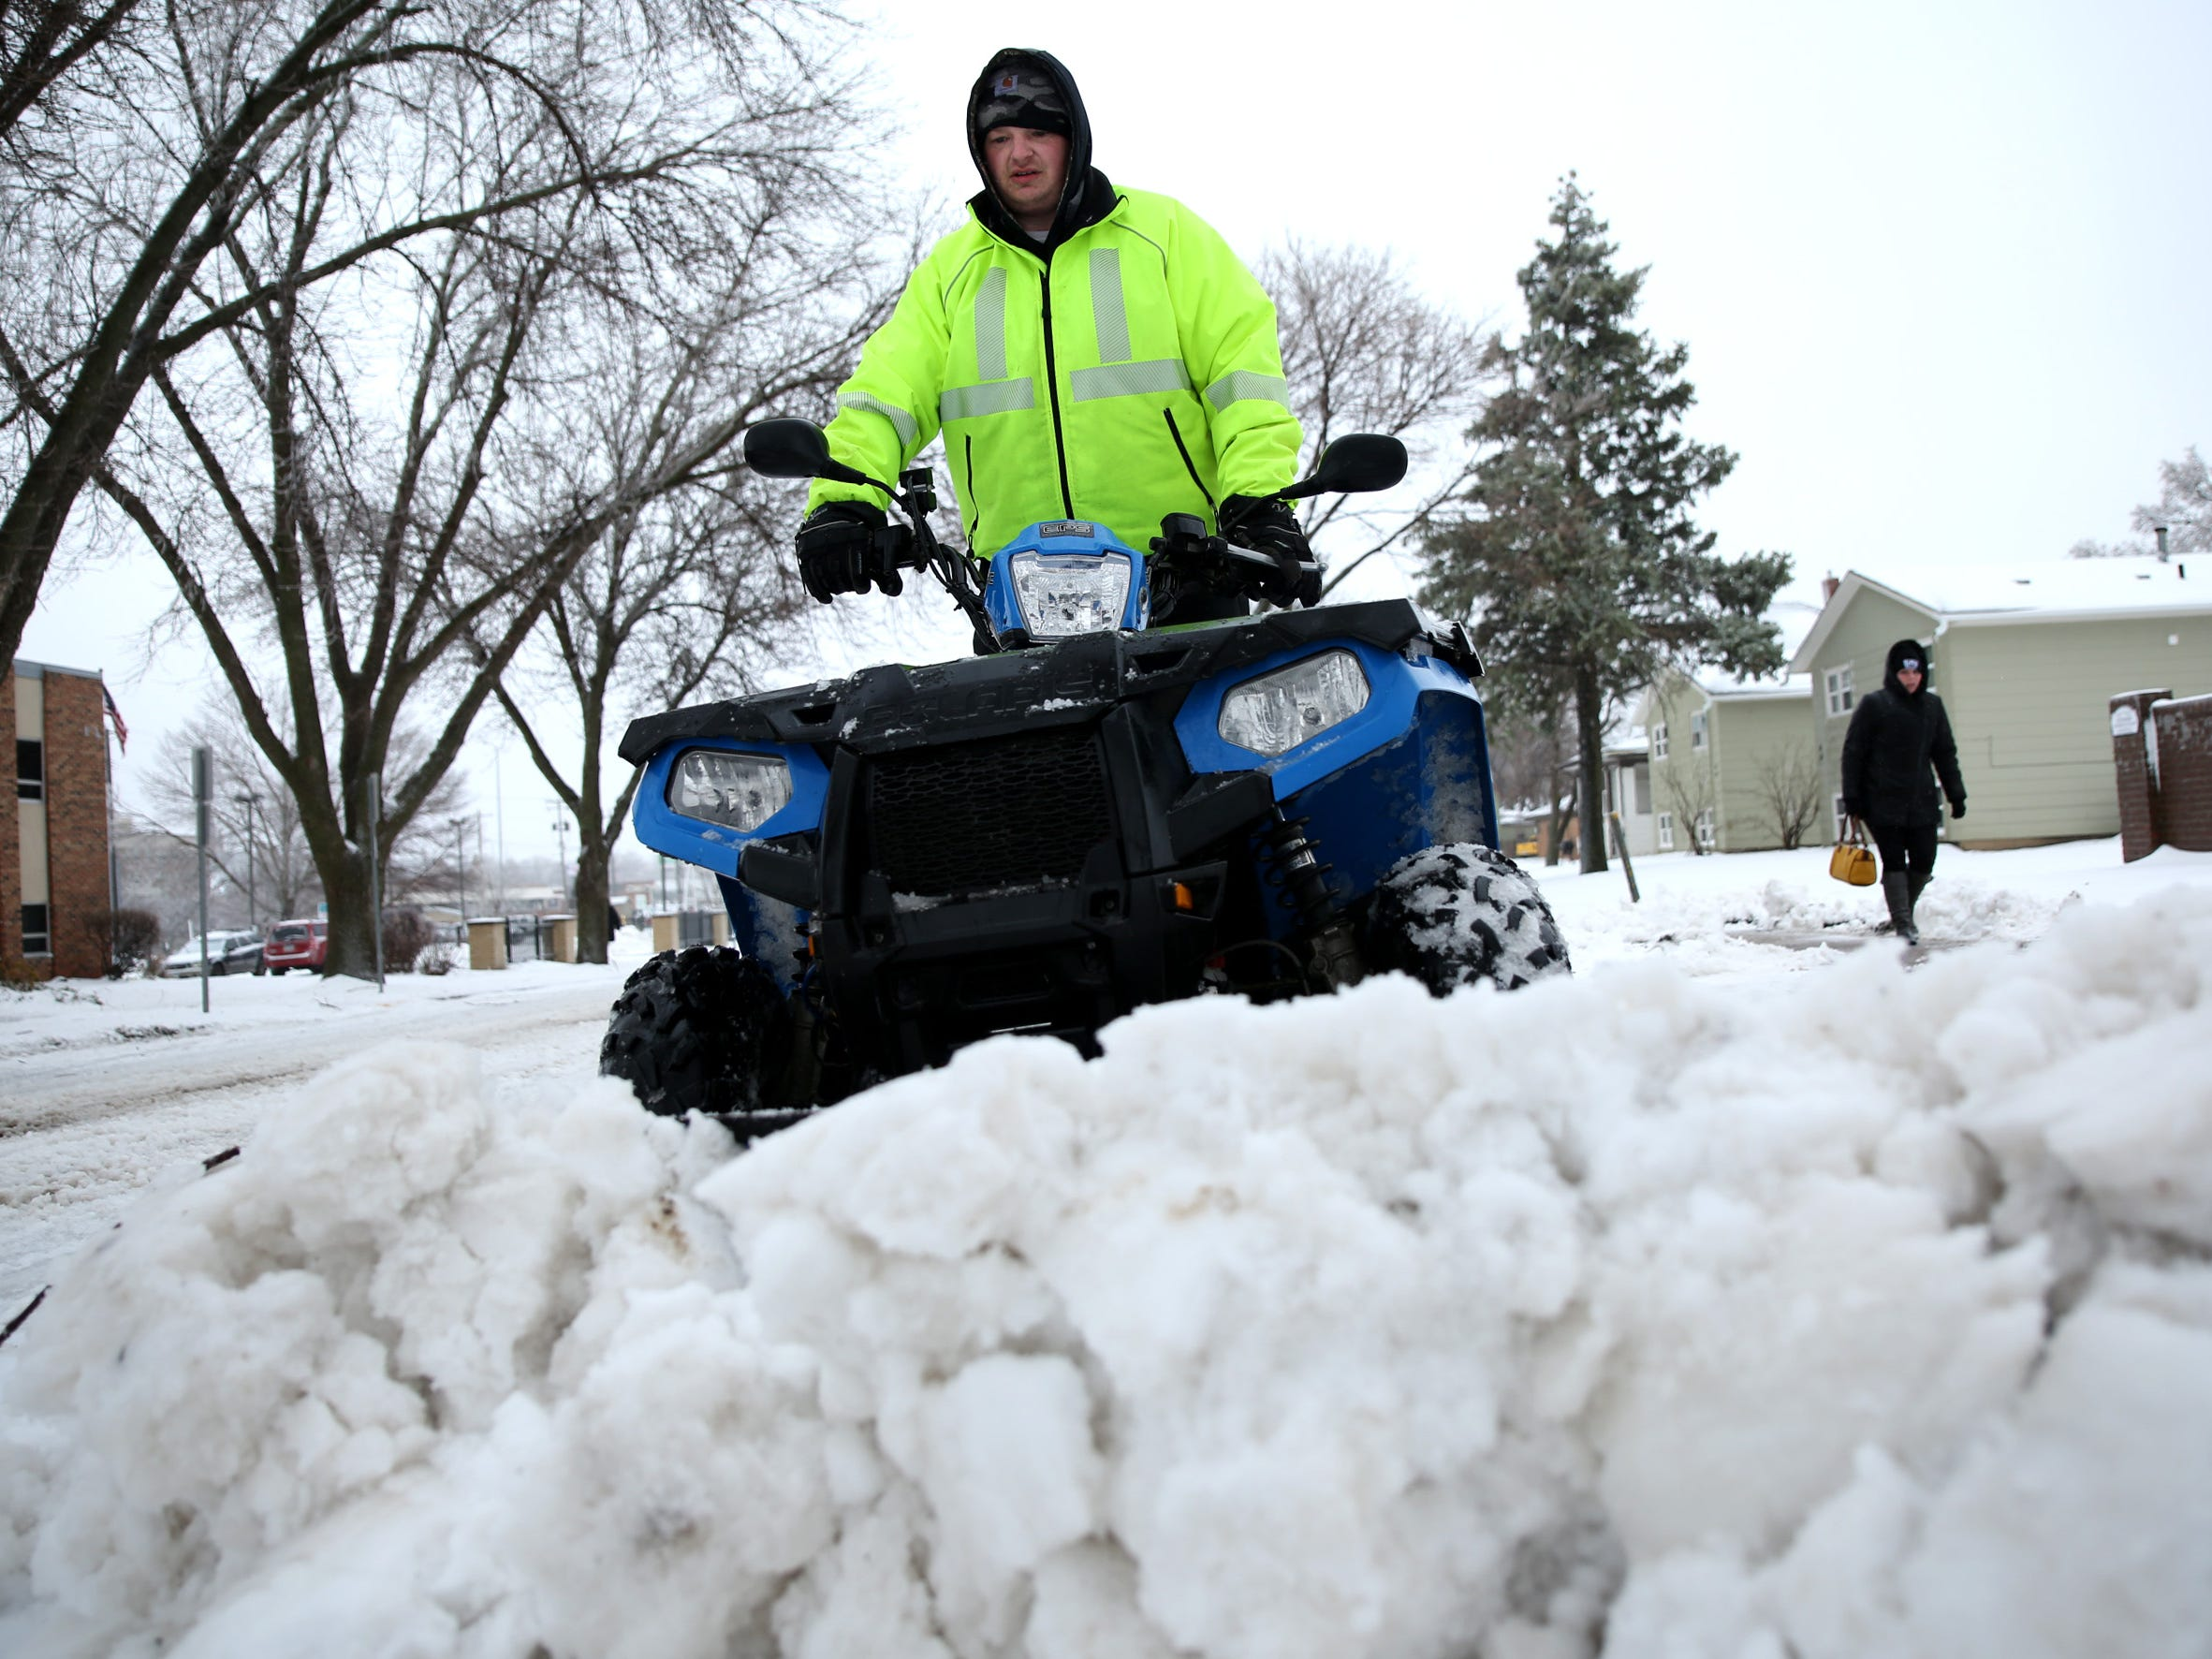 Dan Preston, owner of Mr. Plow, plows snow on a client's property on Spring Avenue Thursday, April 11 with a four-wheeler.